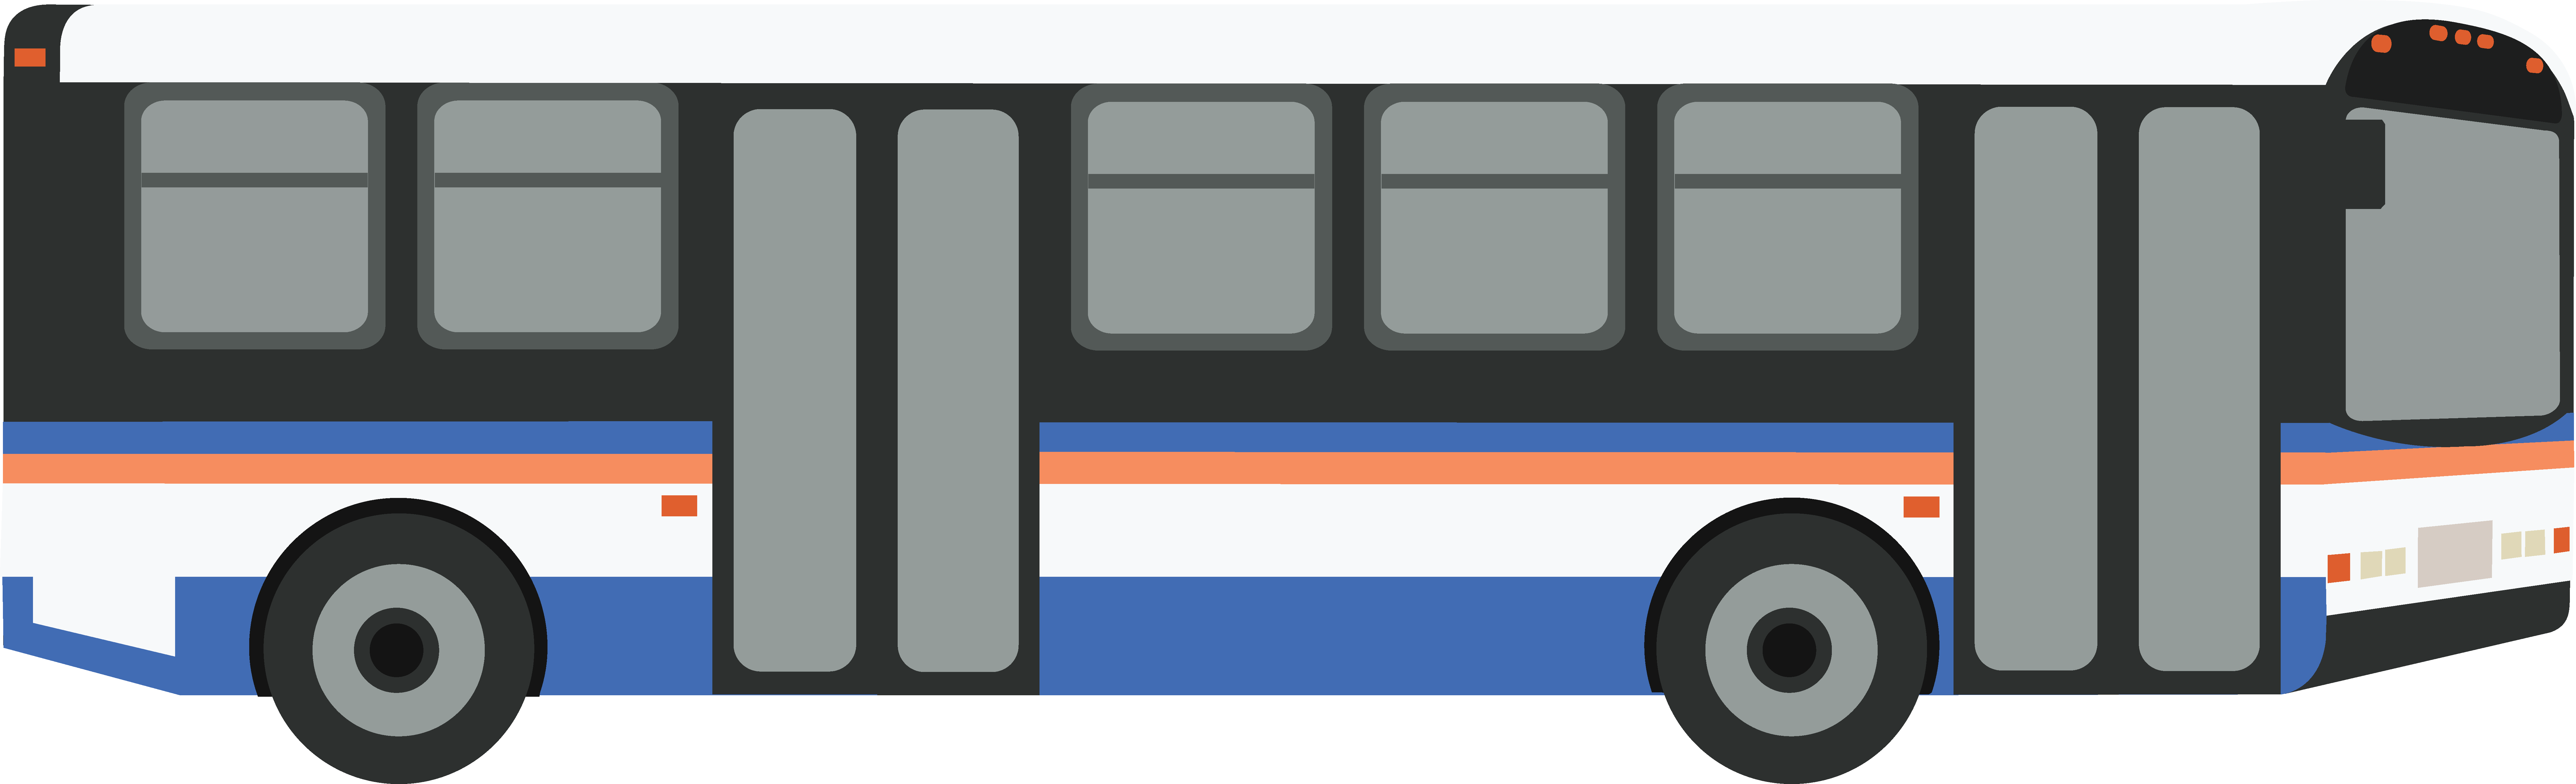 Transport drawing transit bus. Mass clipart clipground public